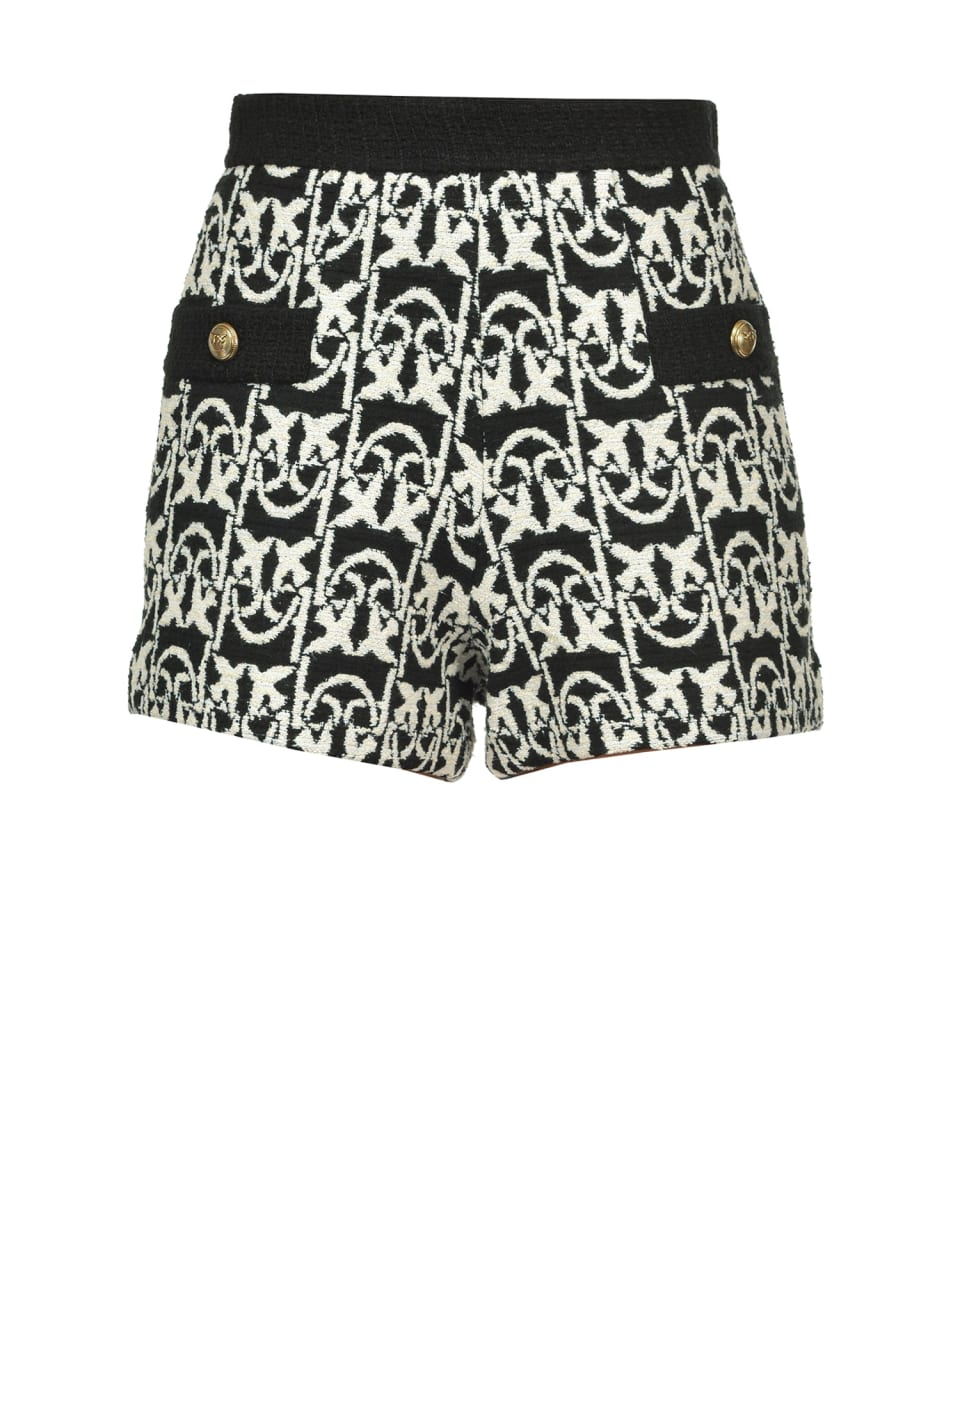 Monogram tweed shorts